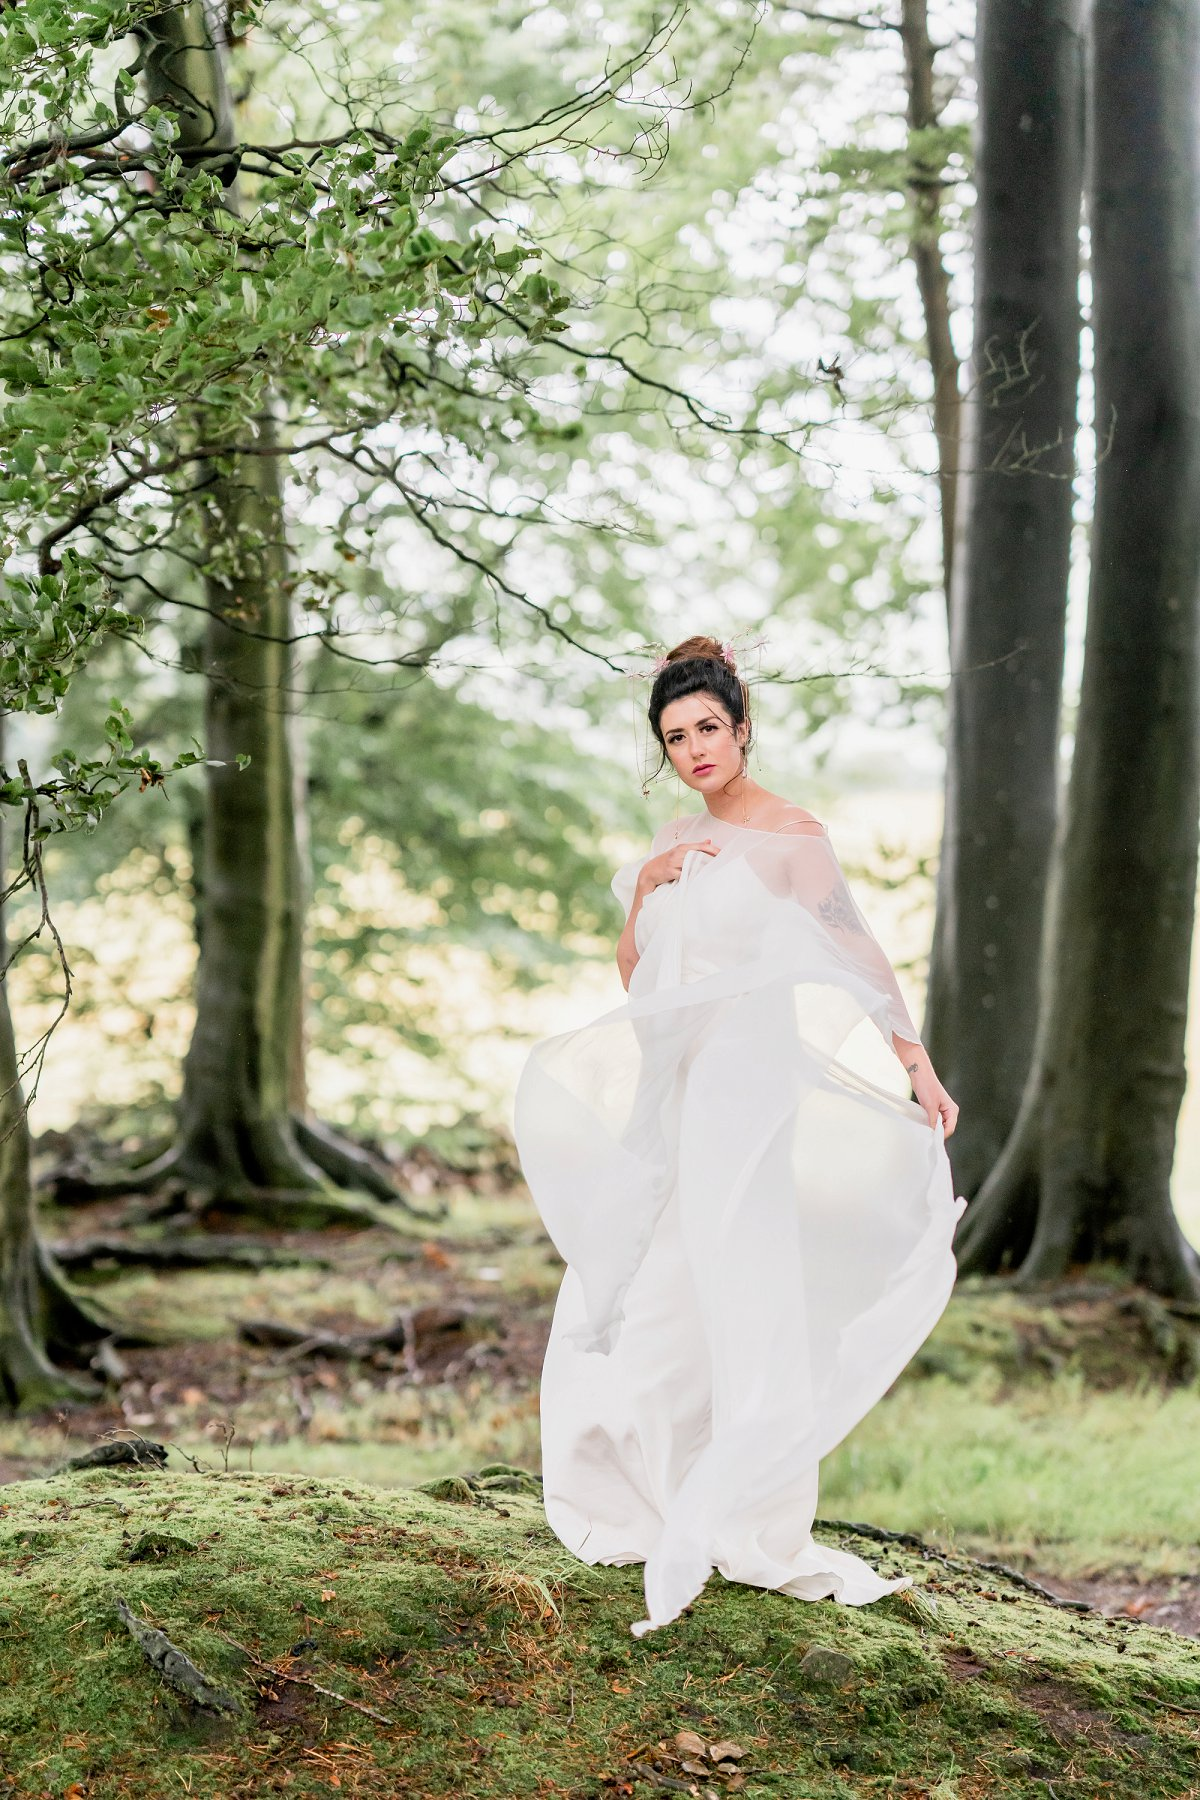 A Styled Woodland Wedding Shoot for Glorious By Heidi at Heaton House Farm (c) Charlotte Palazzo Photography (35)